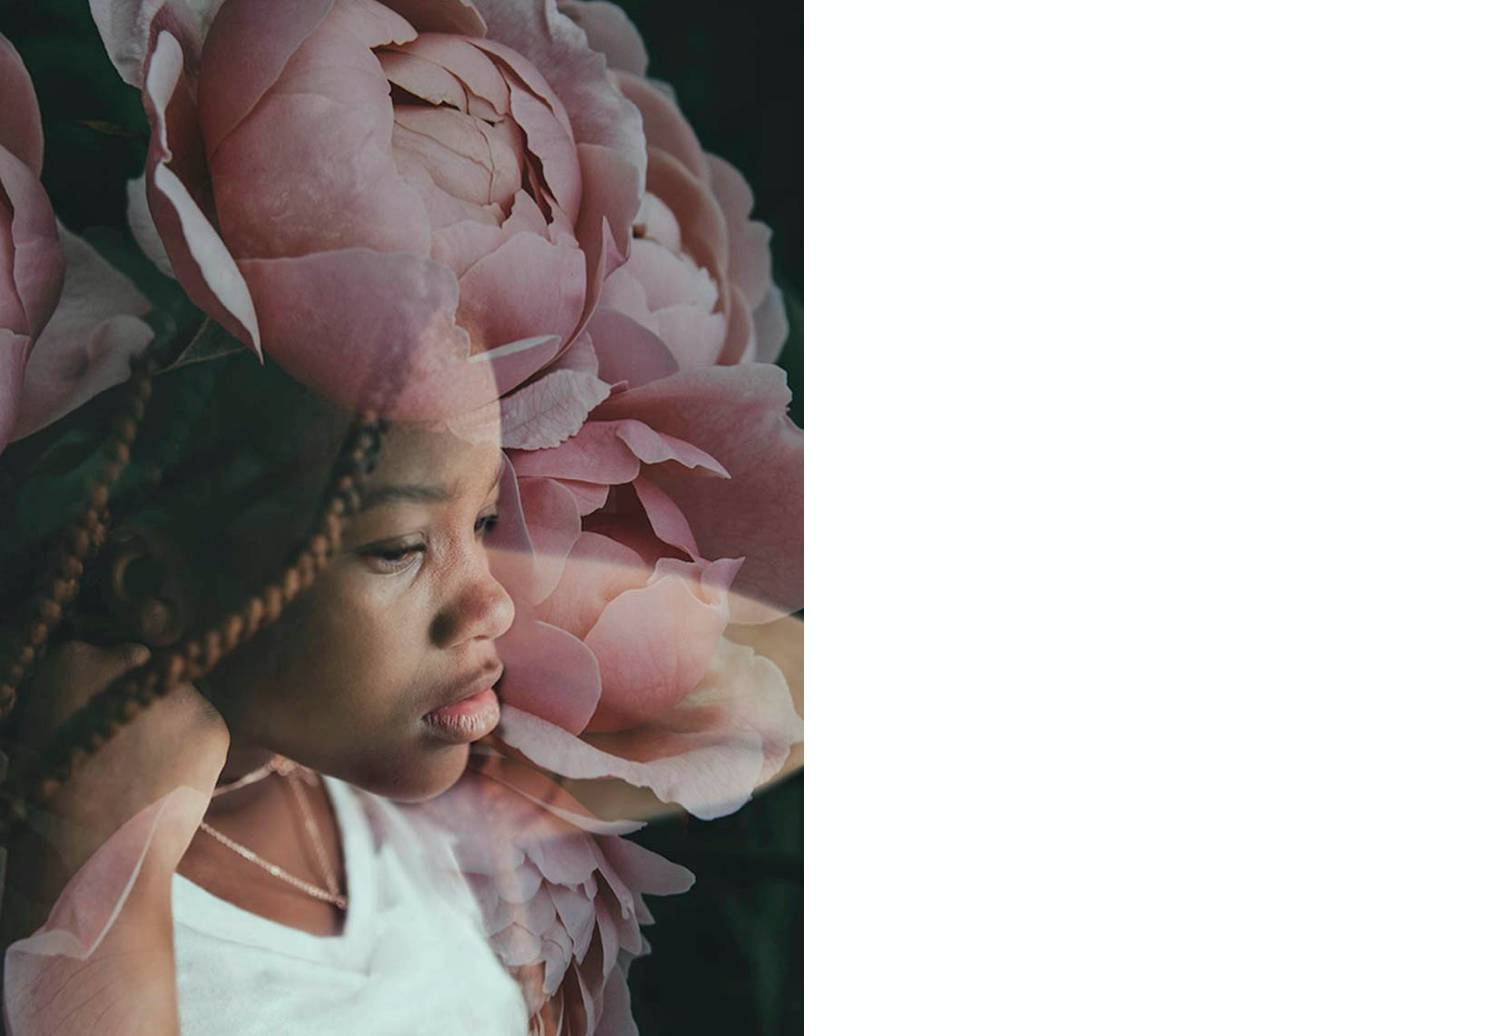 Photo: J'aime Davis's double exposure of a young Black girl with braids overlaid by a close-up photograph of a blooming pink rose